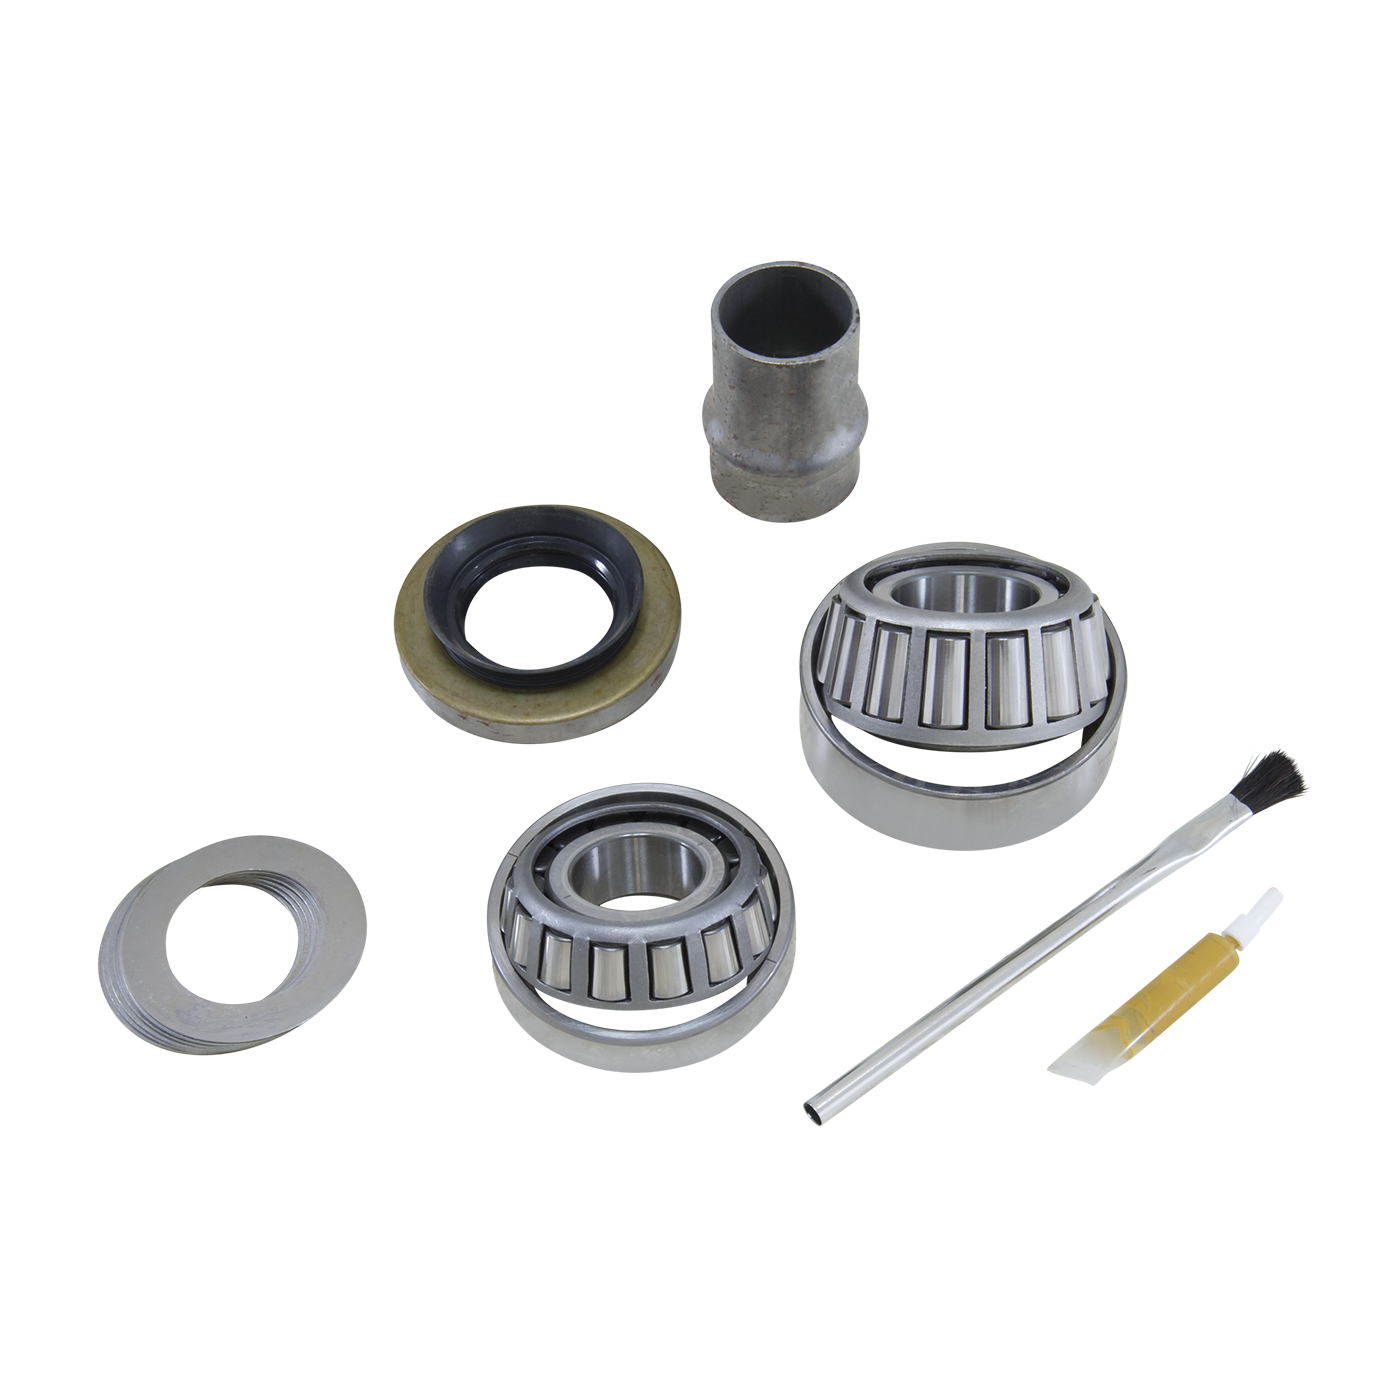 PK ITROOPER - Yukon Pinion install kit for Isuzu (with drum brakes) differential